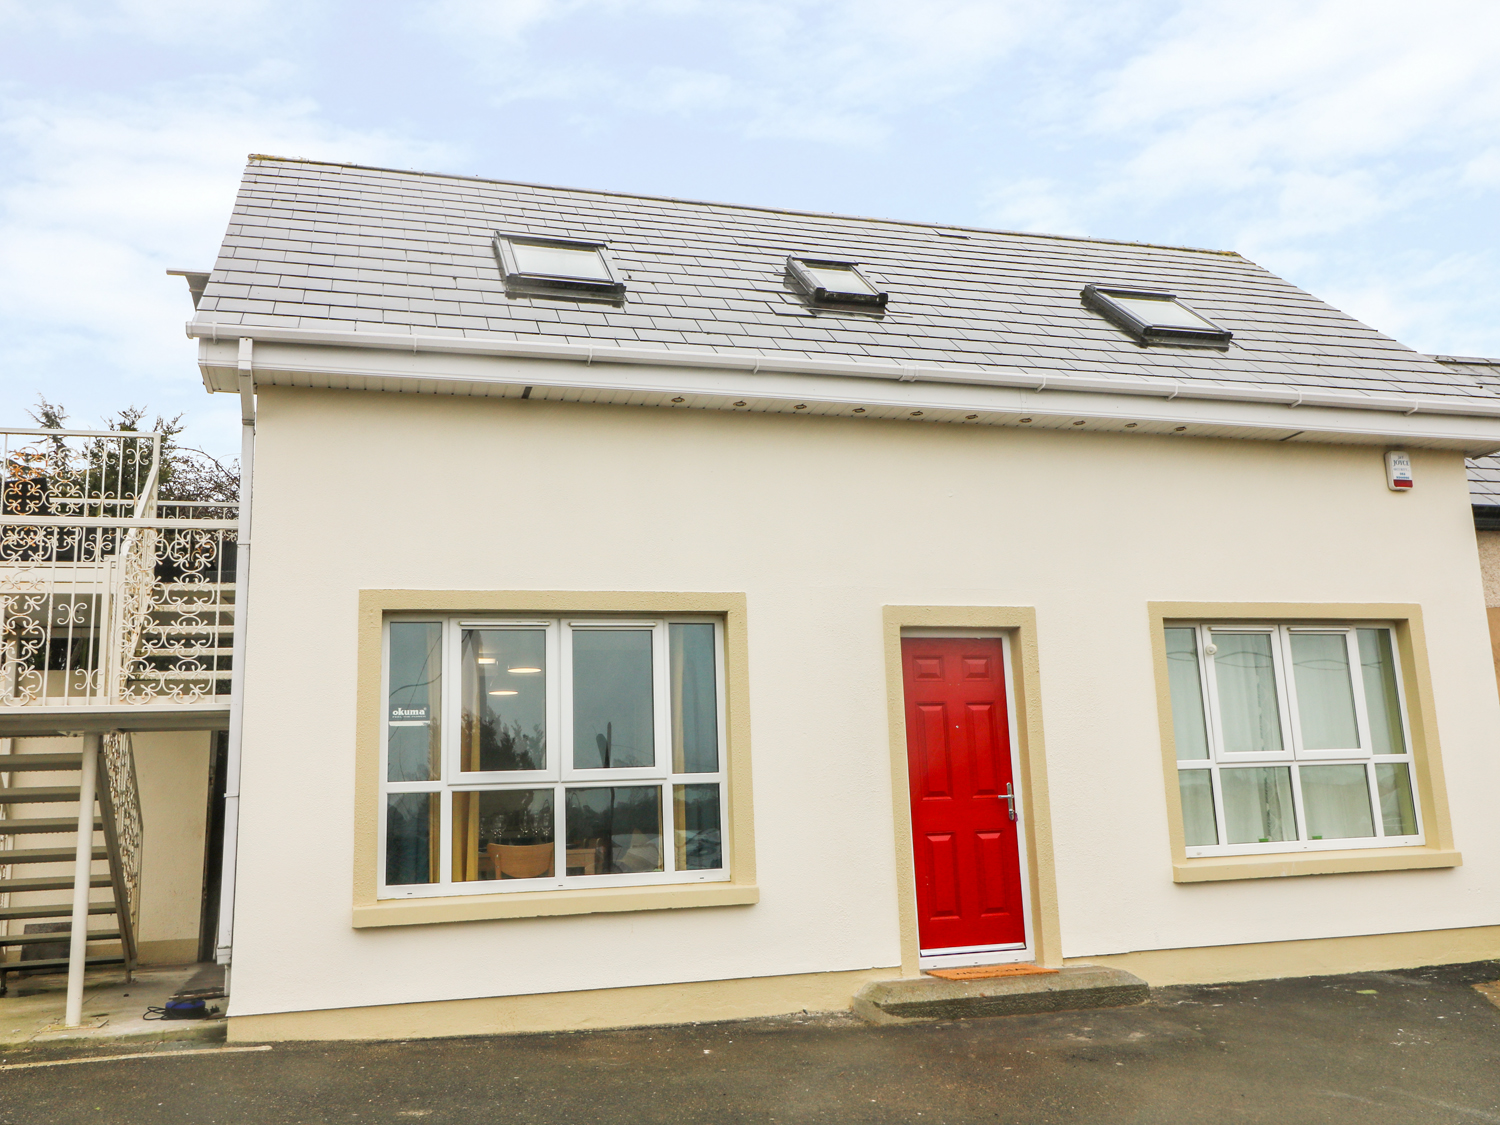 1 bedroom Cottage for rent in Enniscorthy